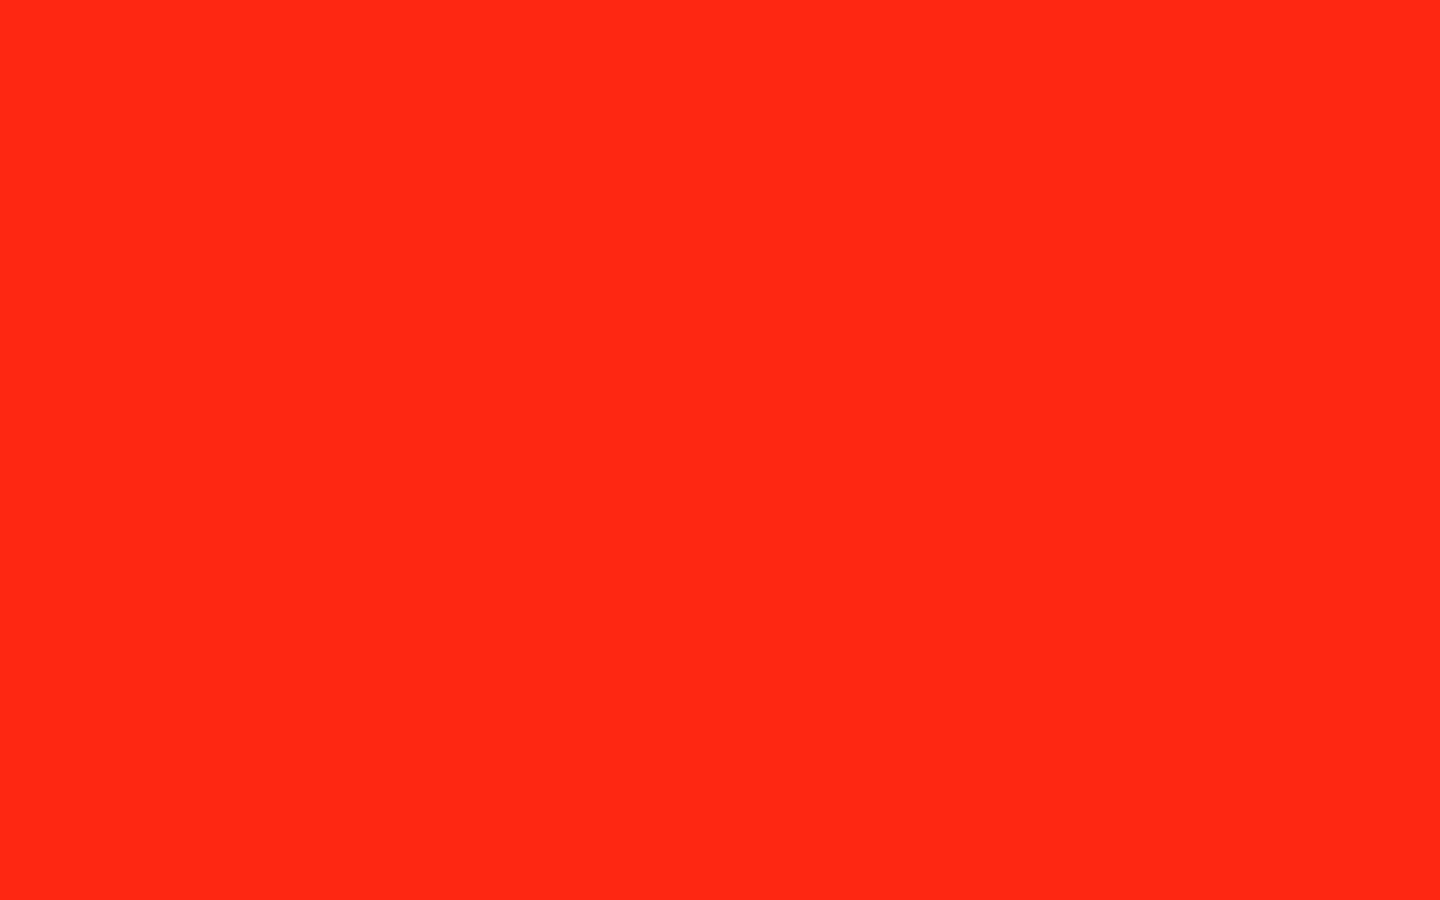 1440x900 Red RYB Solid Color Background